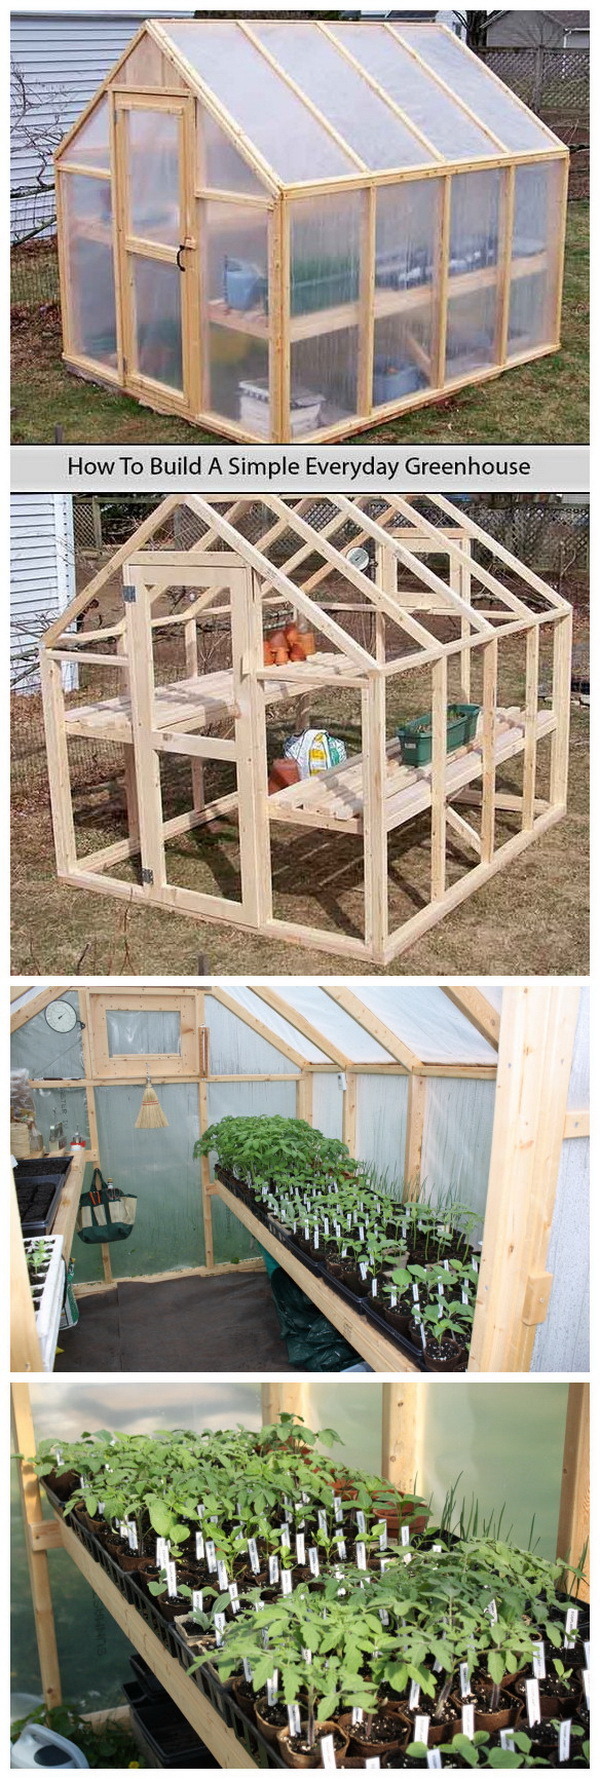 A tutorial to build a simple everyday greenhouse on your own with simpler stuff that you might get for a few dollars.